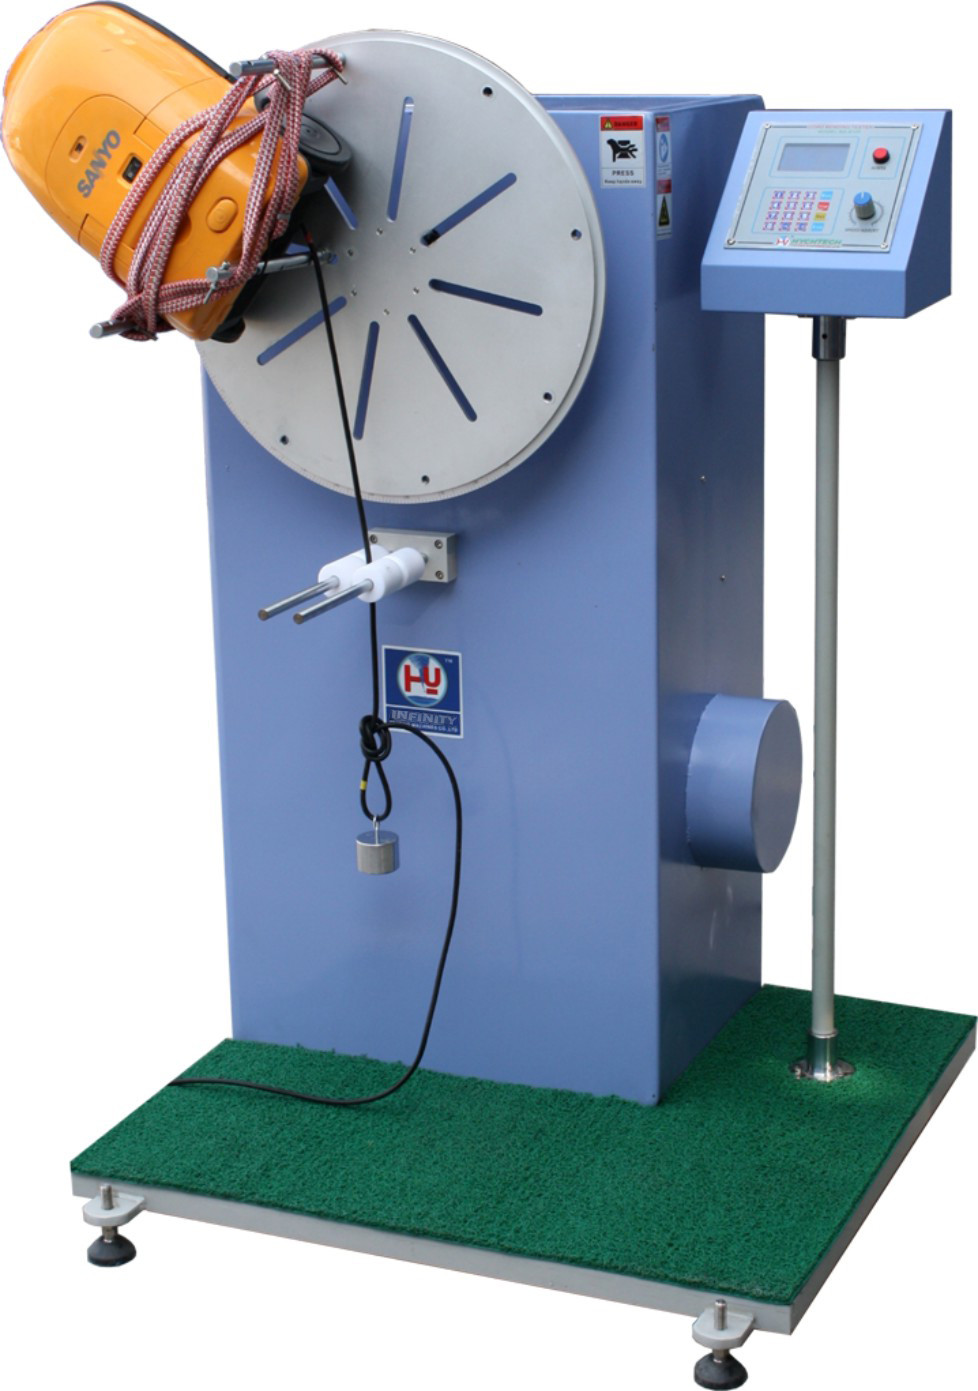 Cord Bend Test Equipment / Tensile testing machine 10 - 40 mumbers/min Speed